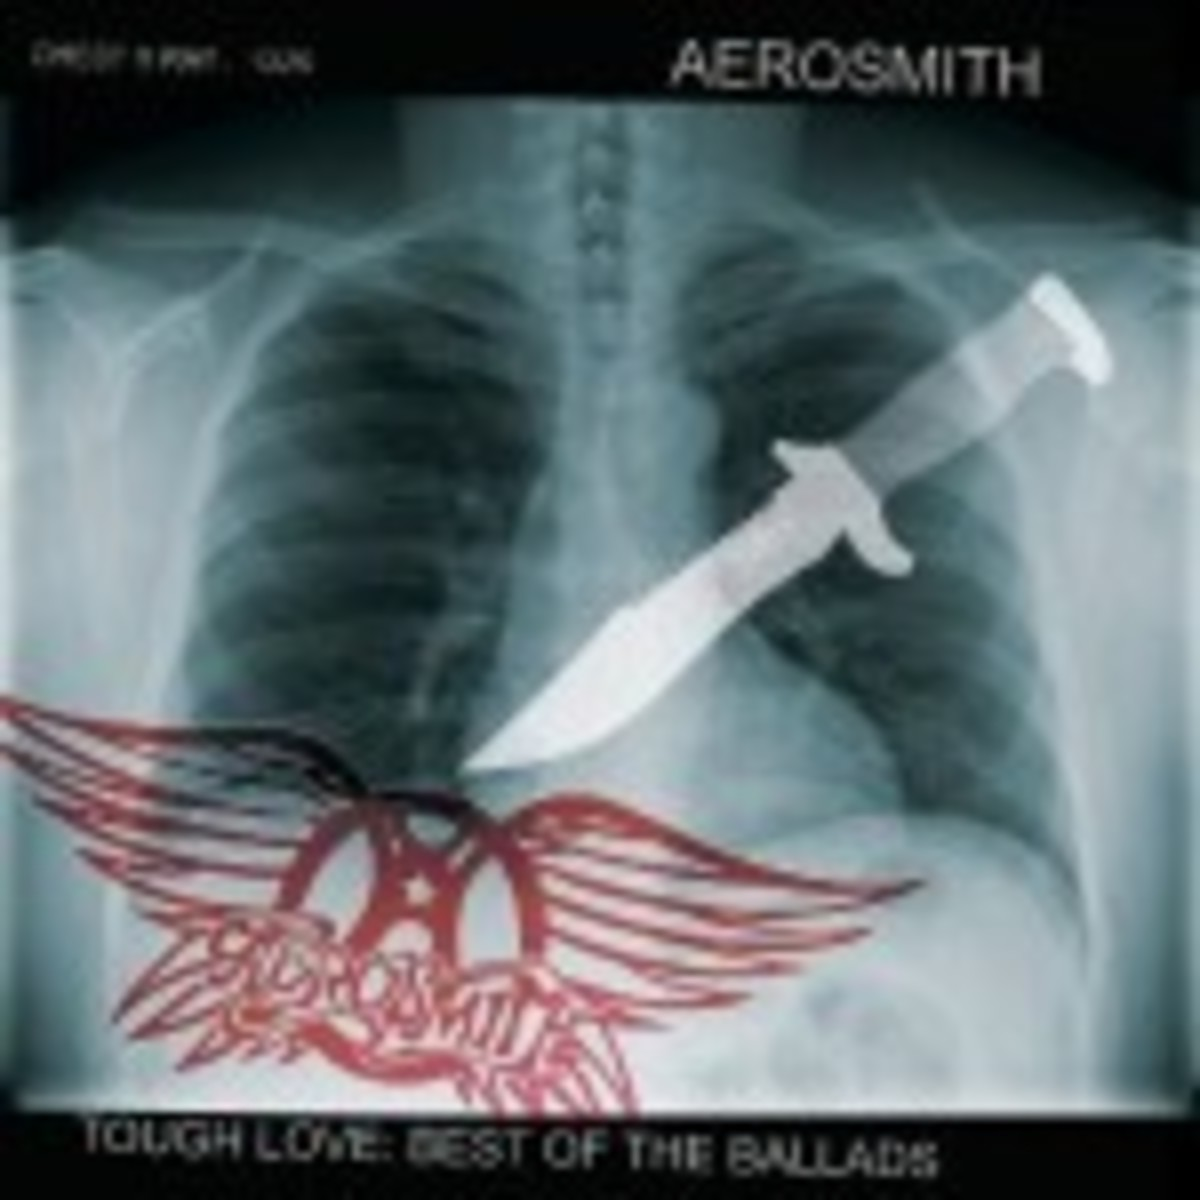 Aerosmith_Tough Love